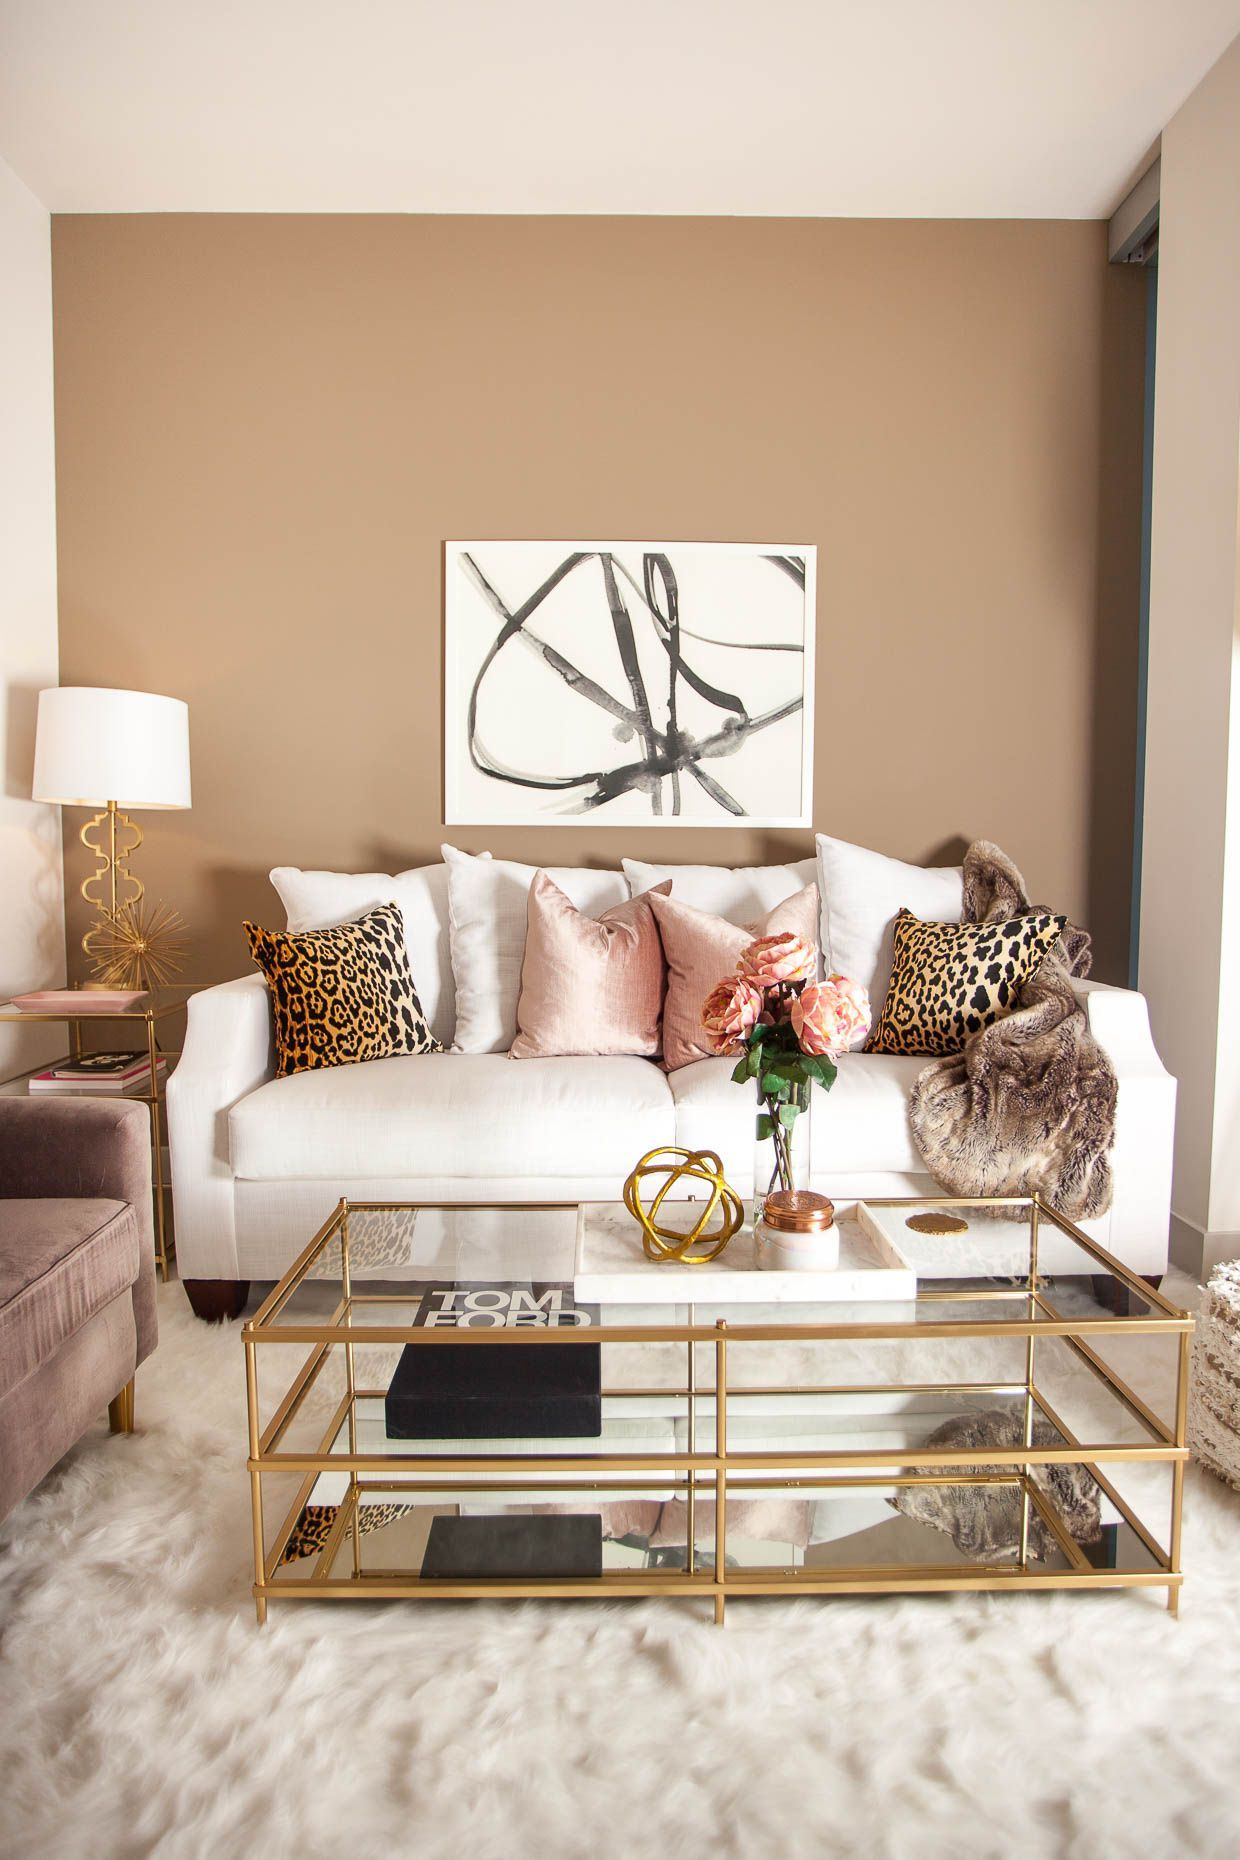 Get Living Room Paint Color Ideas For Your Home   Find A Colour Palette  That Speaks Your Personality From Our Design Gallery!